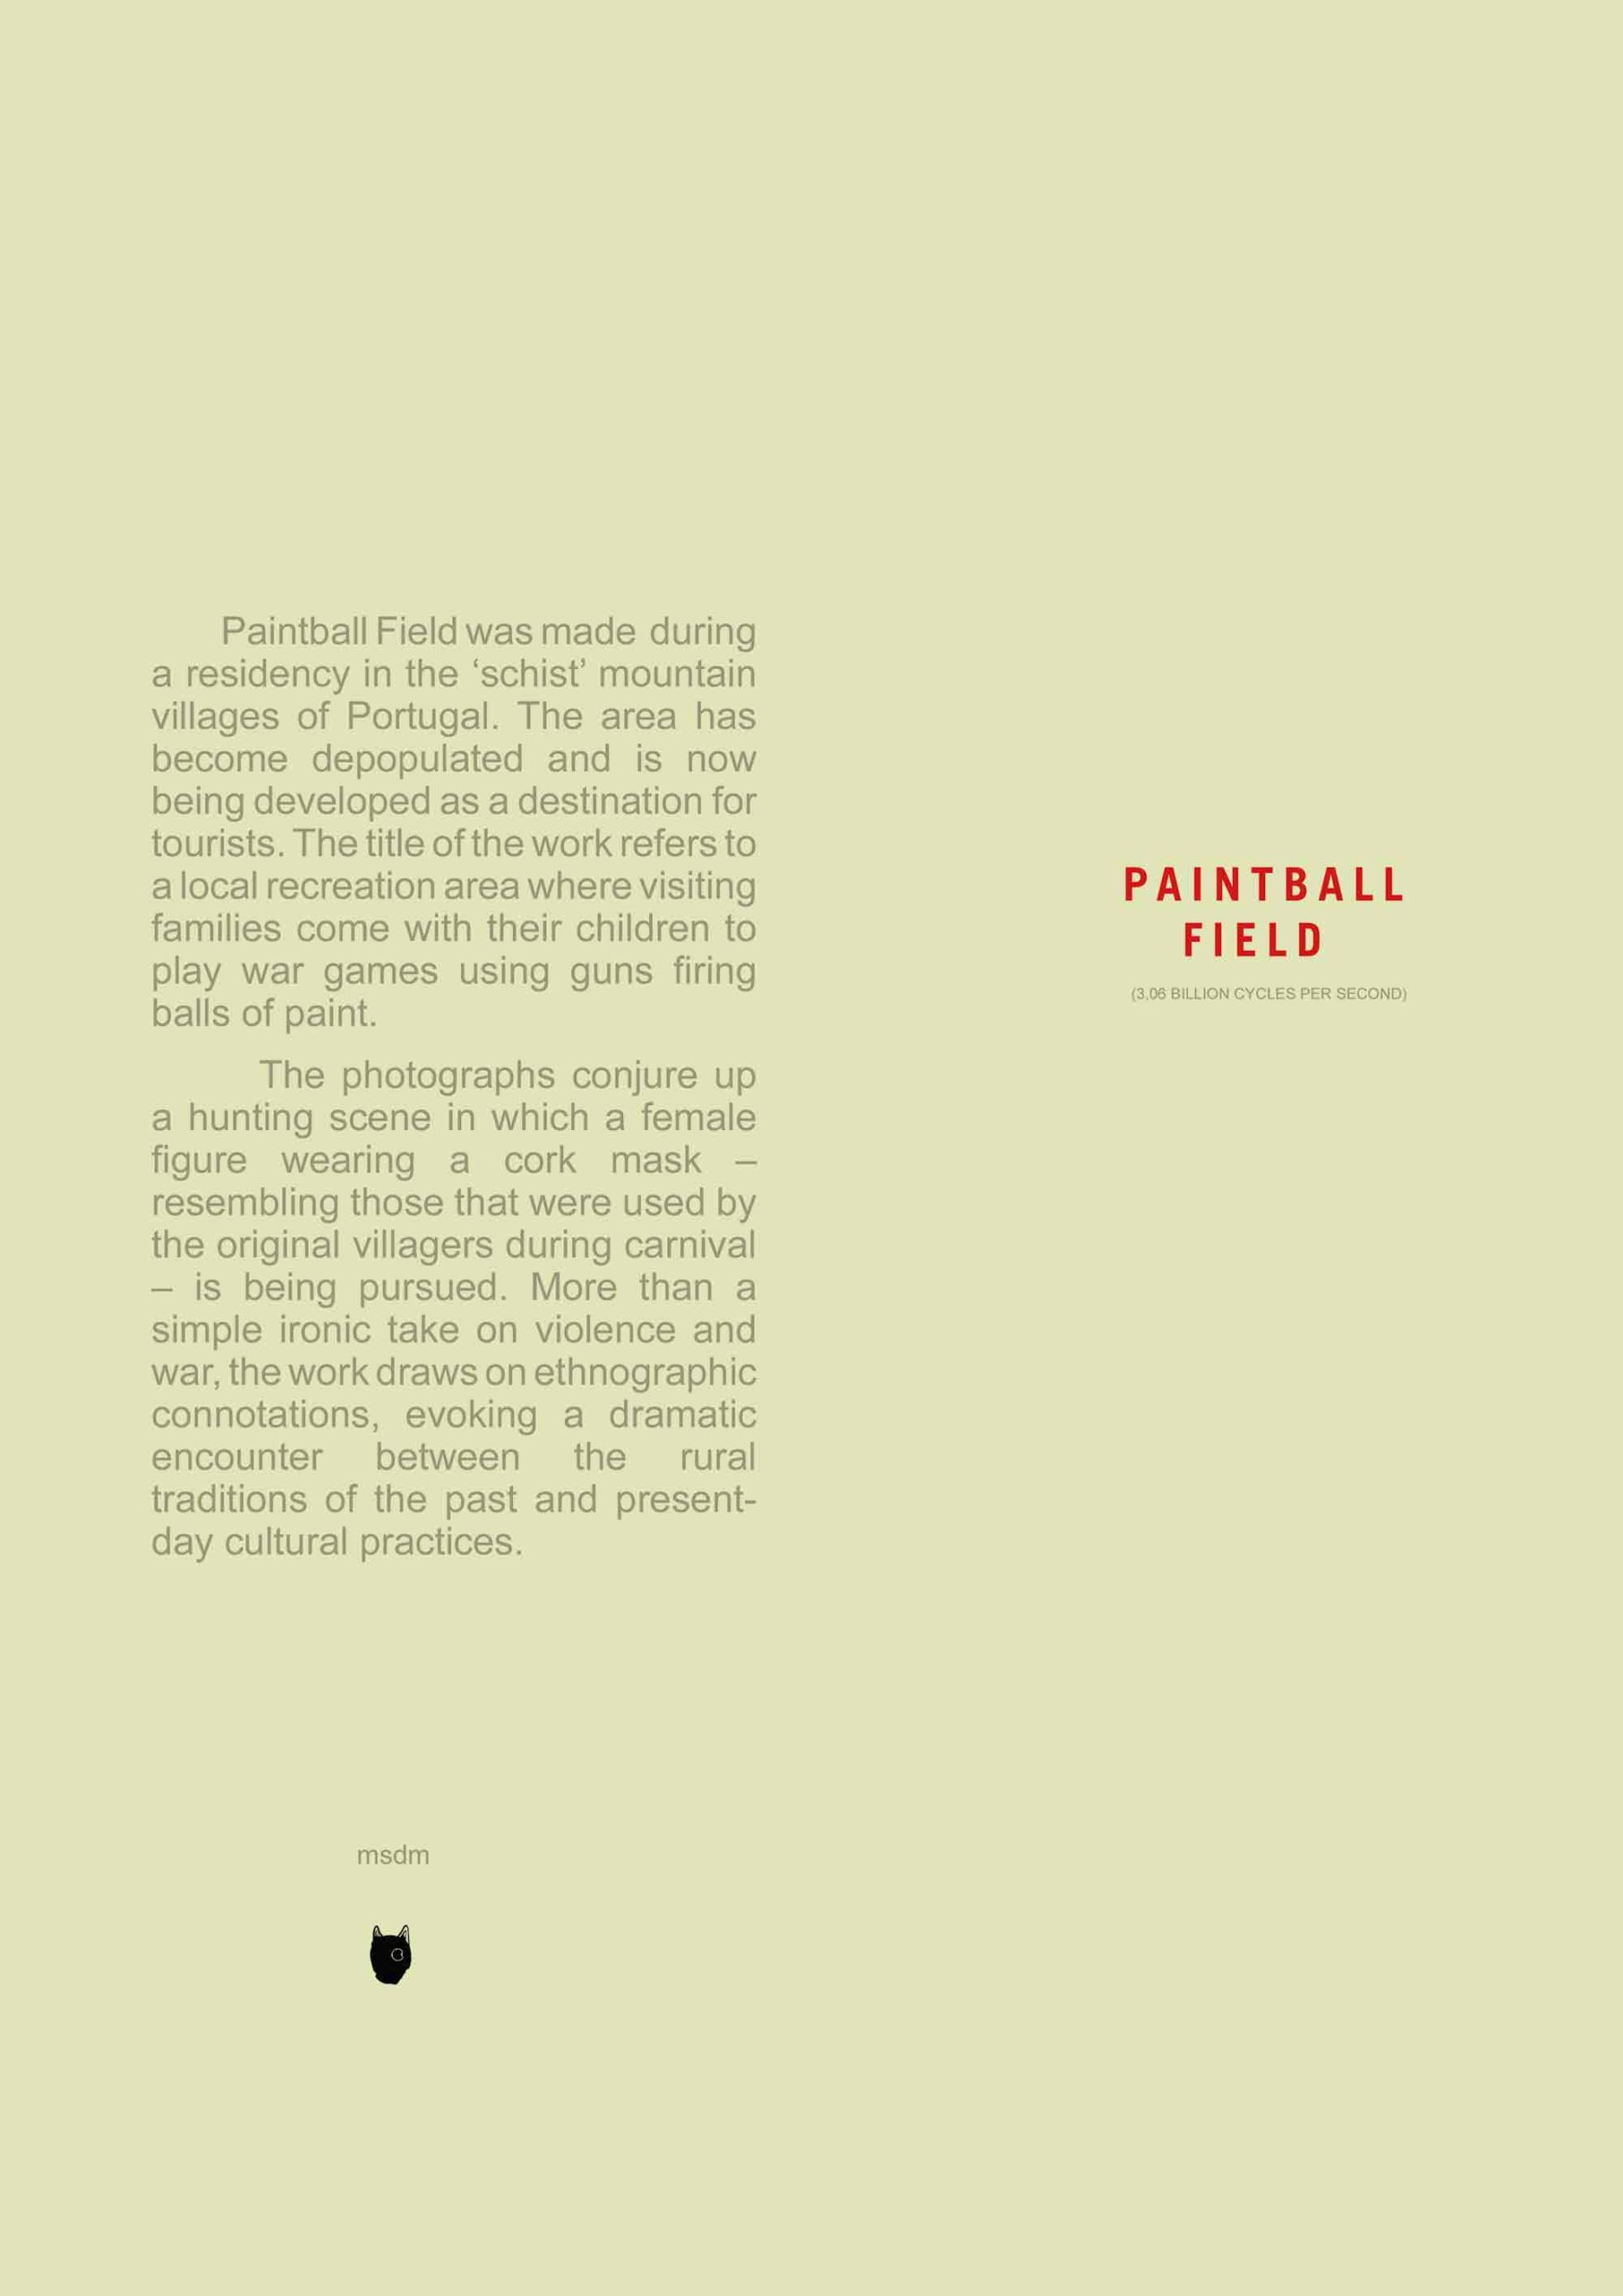 PAINTBALLFIELD-cover